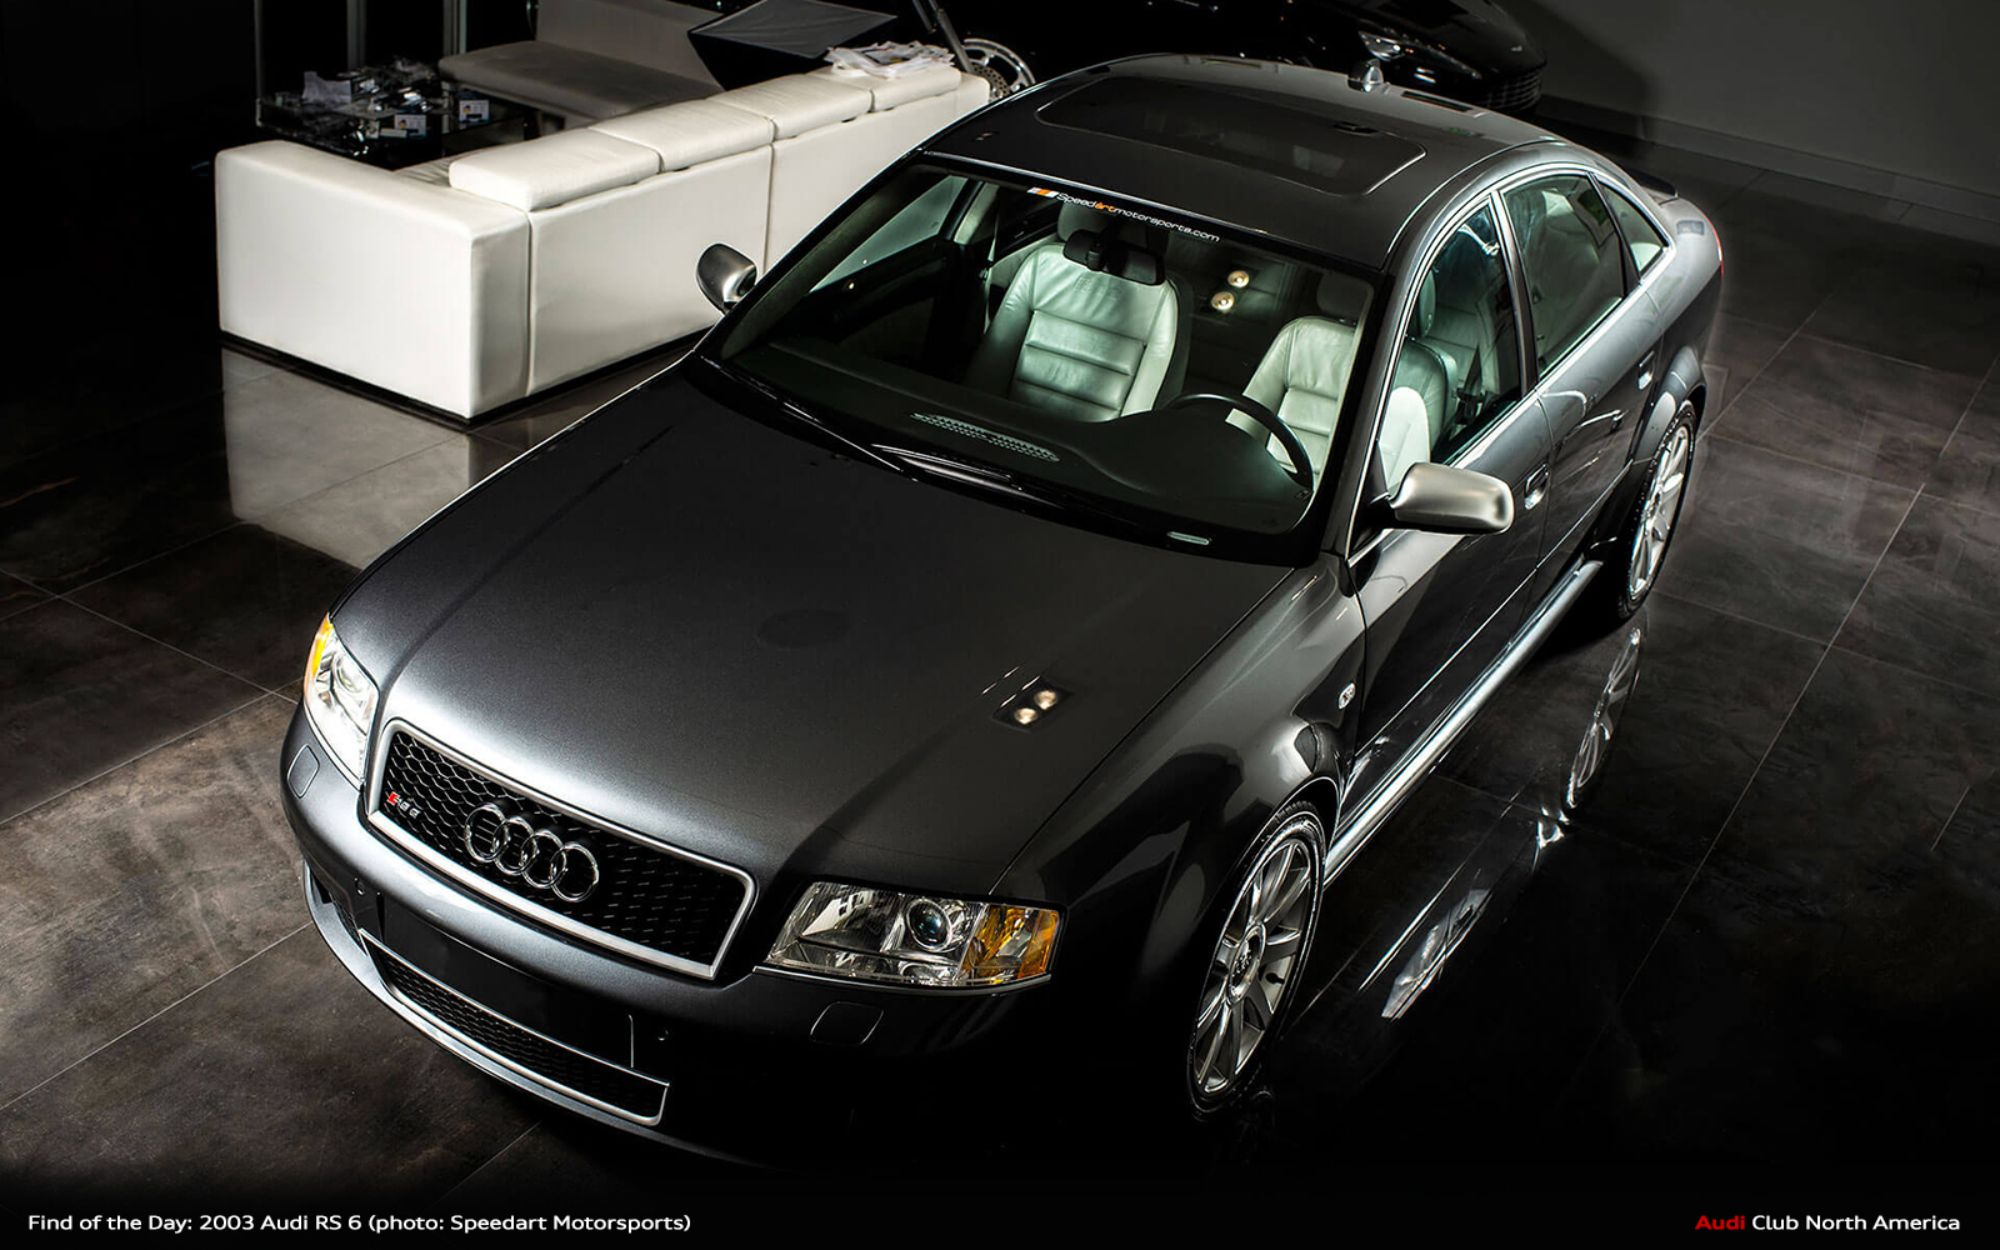 Find of the Day: 2003 Daytona Grey Audi RS 6